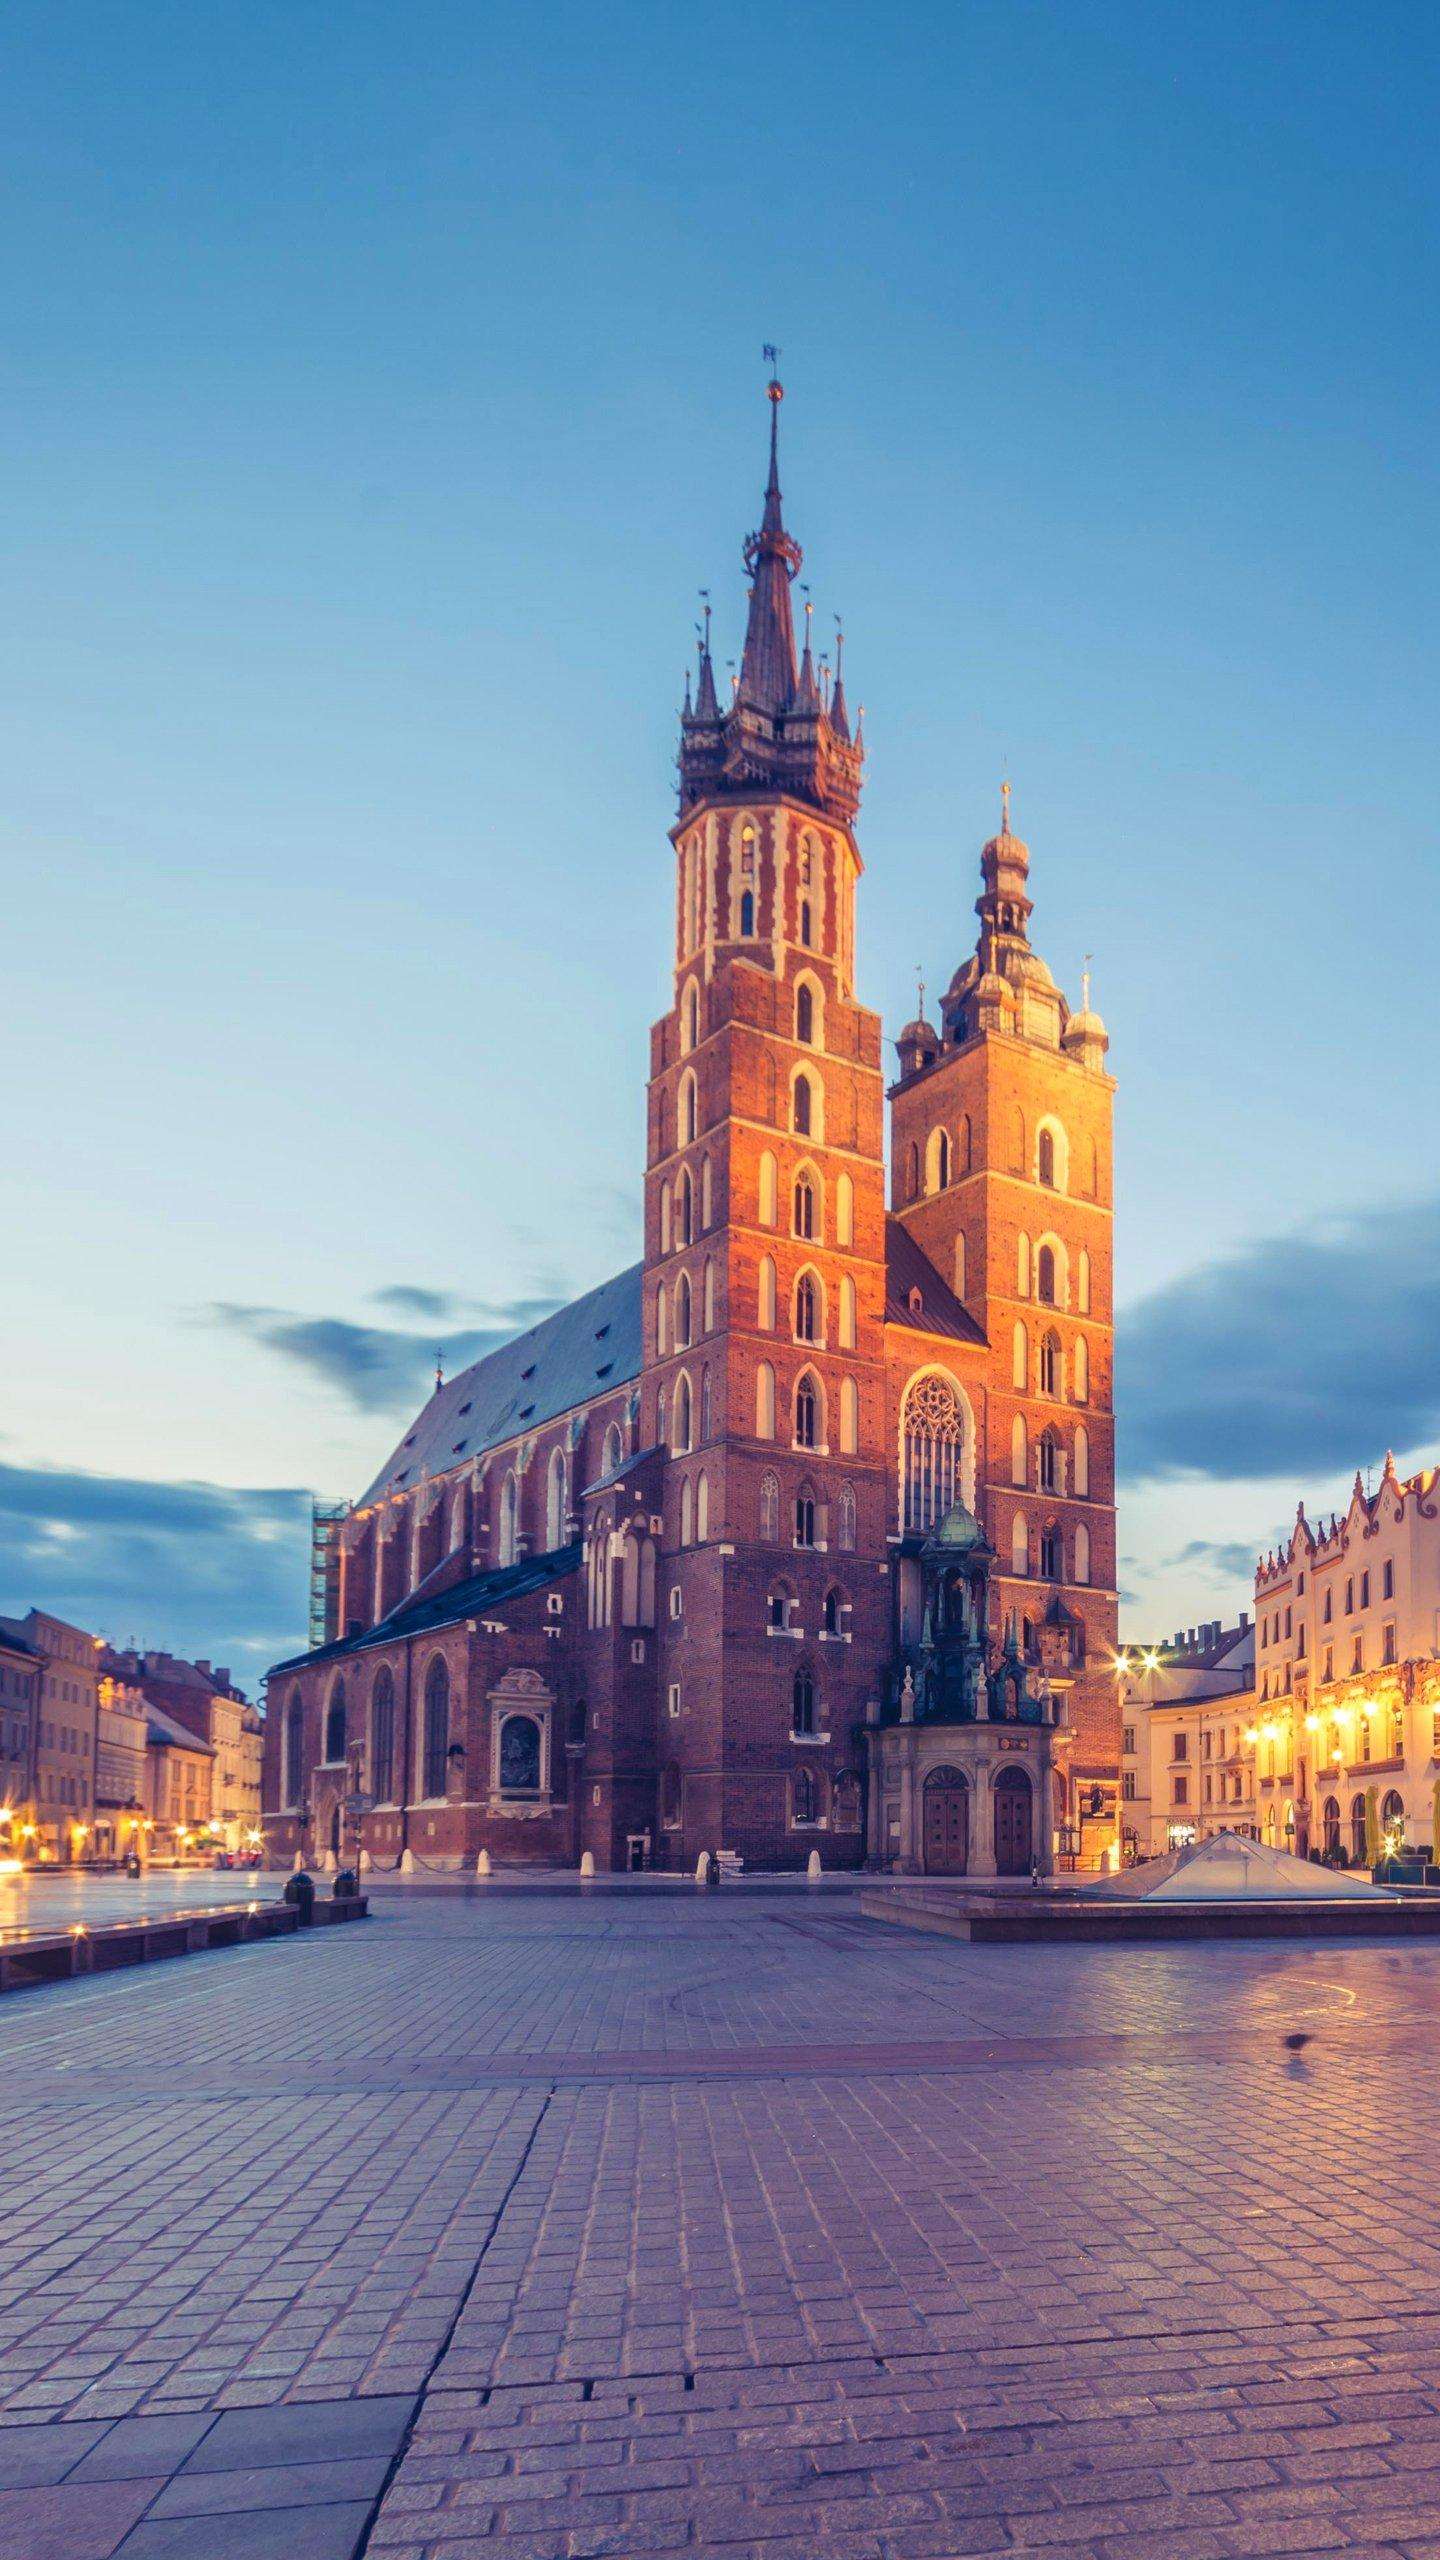 Poland - Krakow. The third largest city in Poland, once the capital of Poland, has a long history.